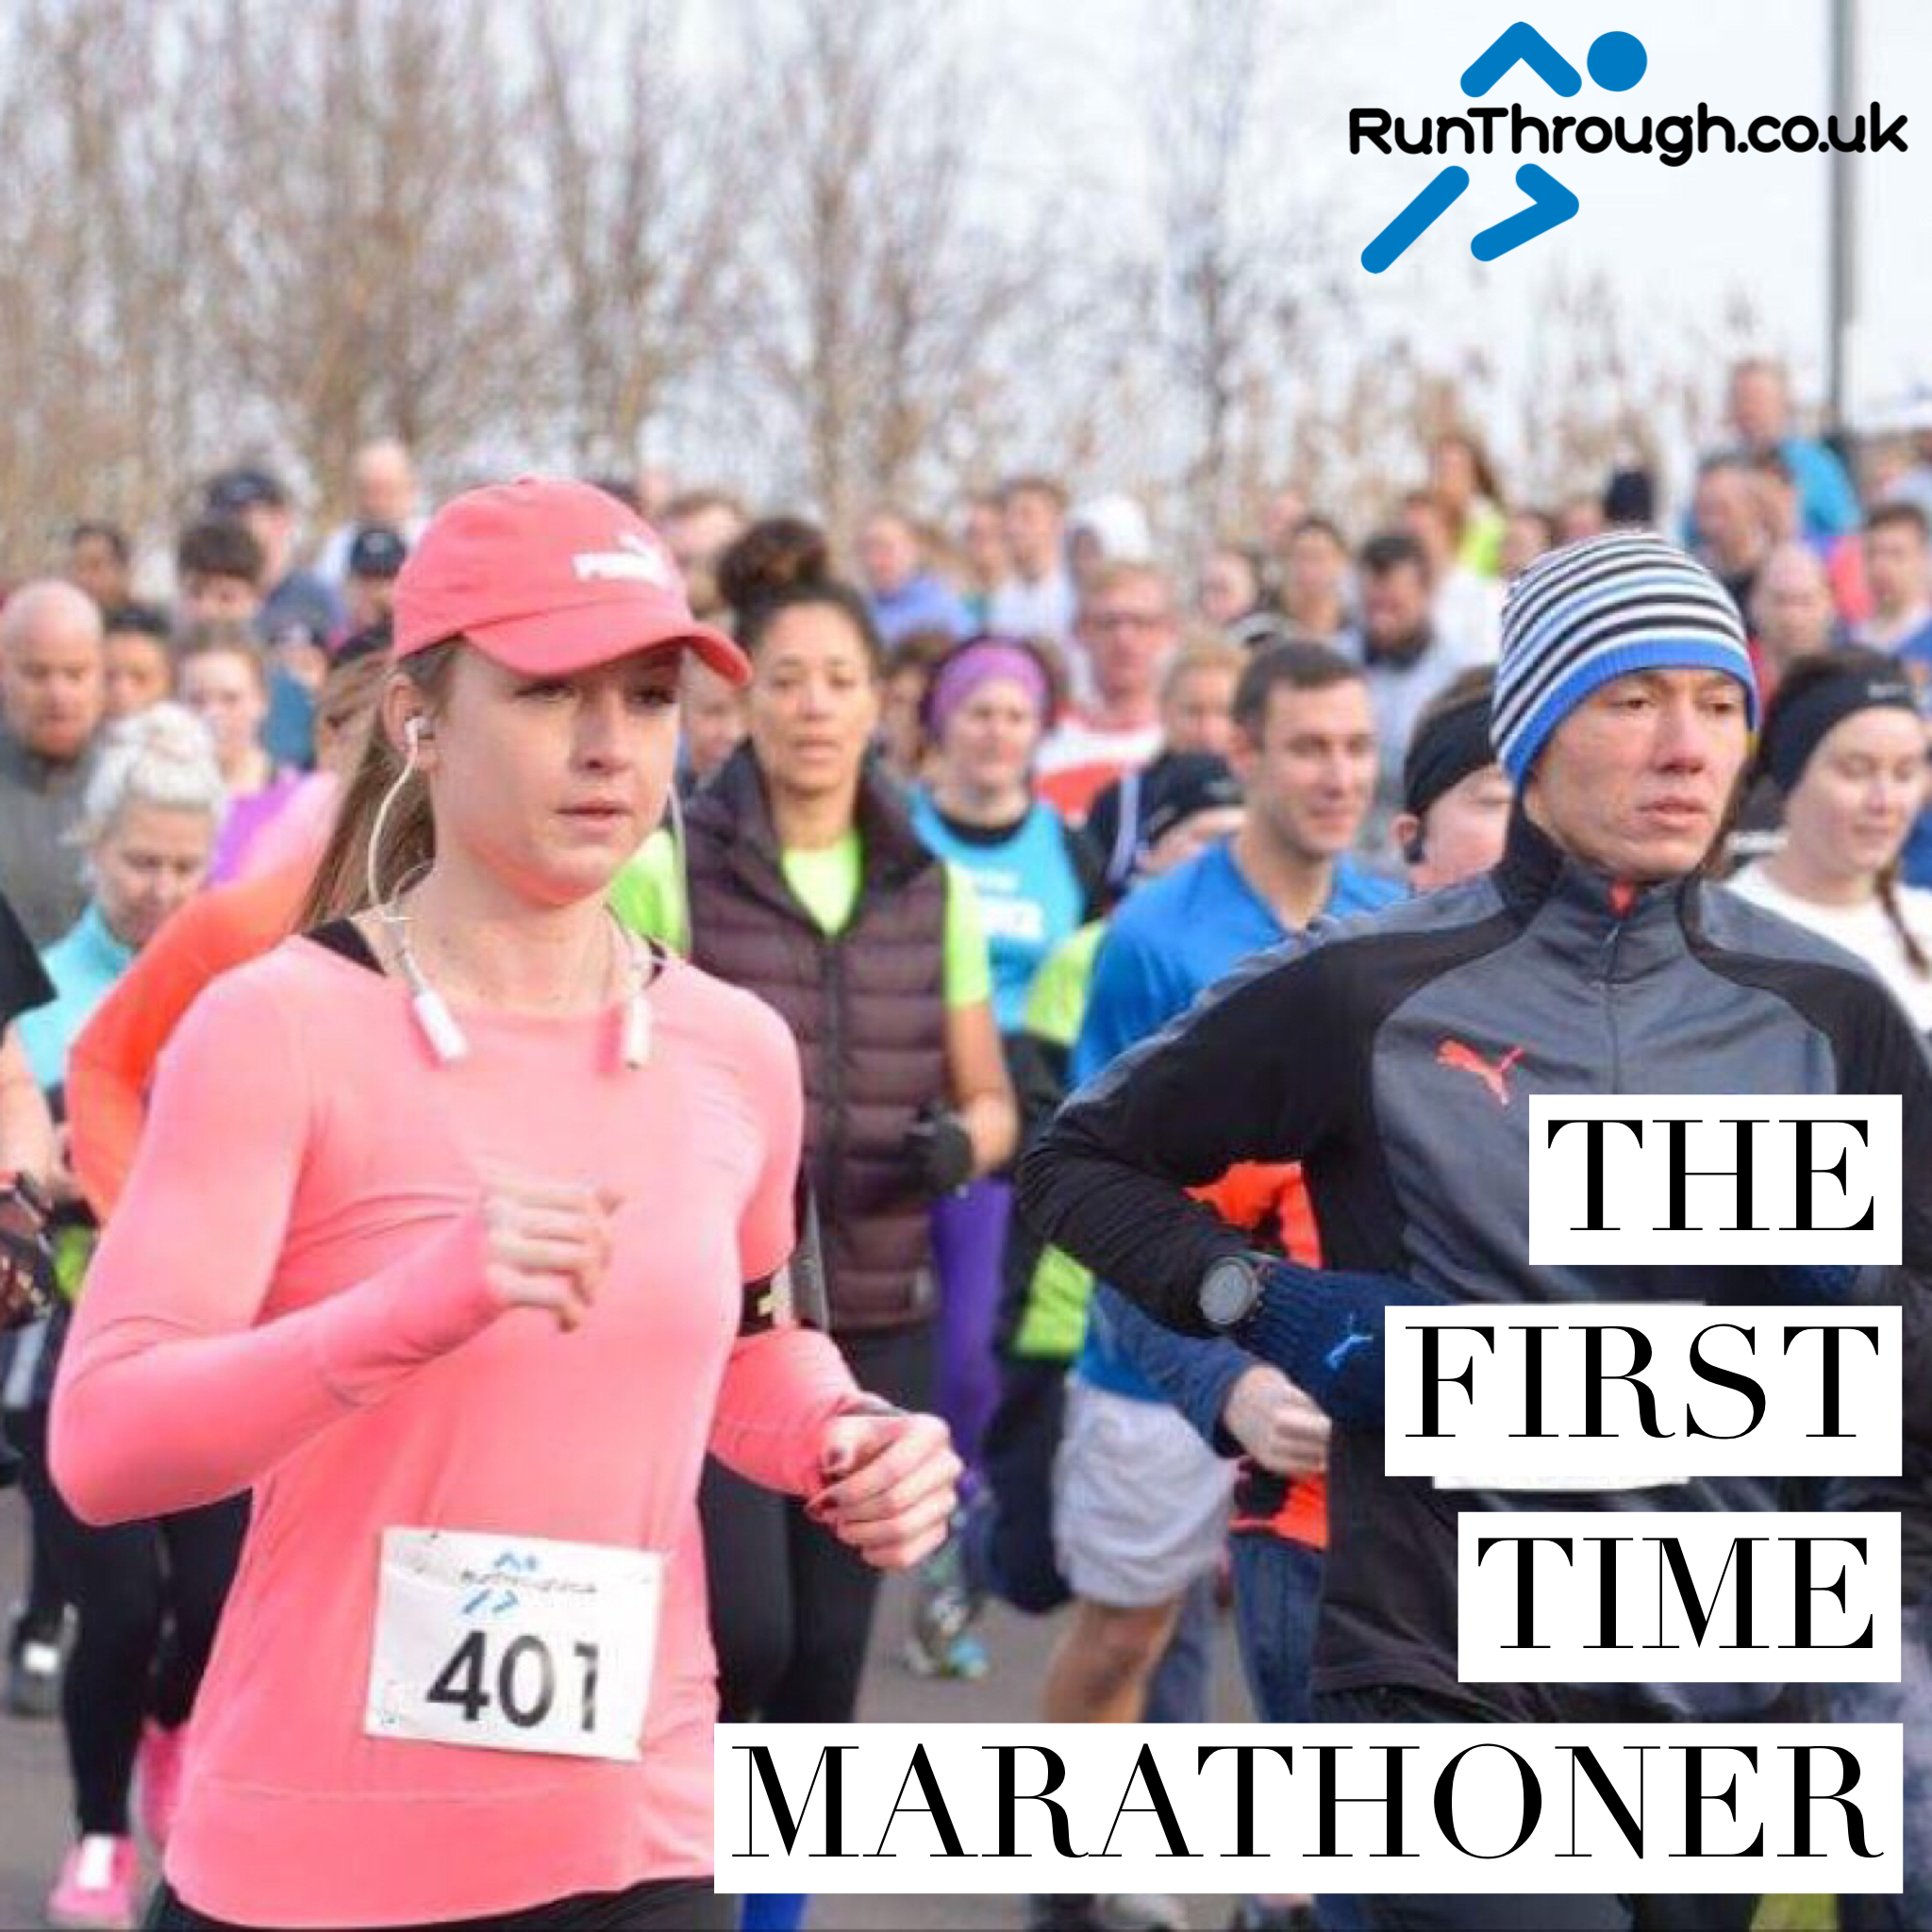 The first time marathon runner